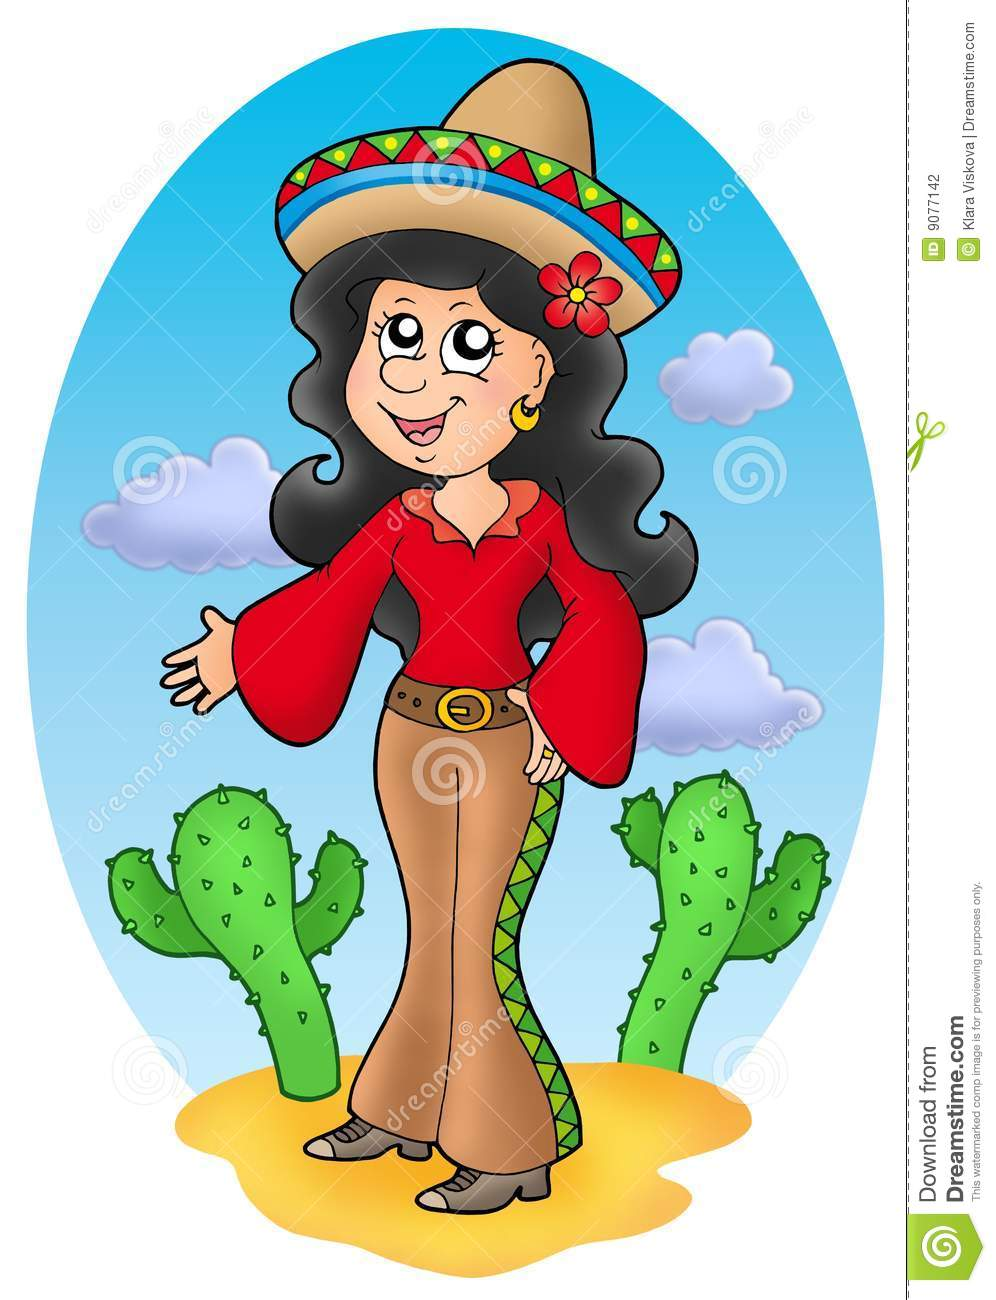 Cartoon Characters Mexican : Cute mexican girl in desert stock illustration